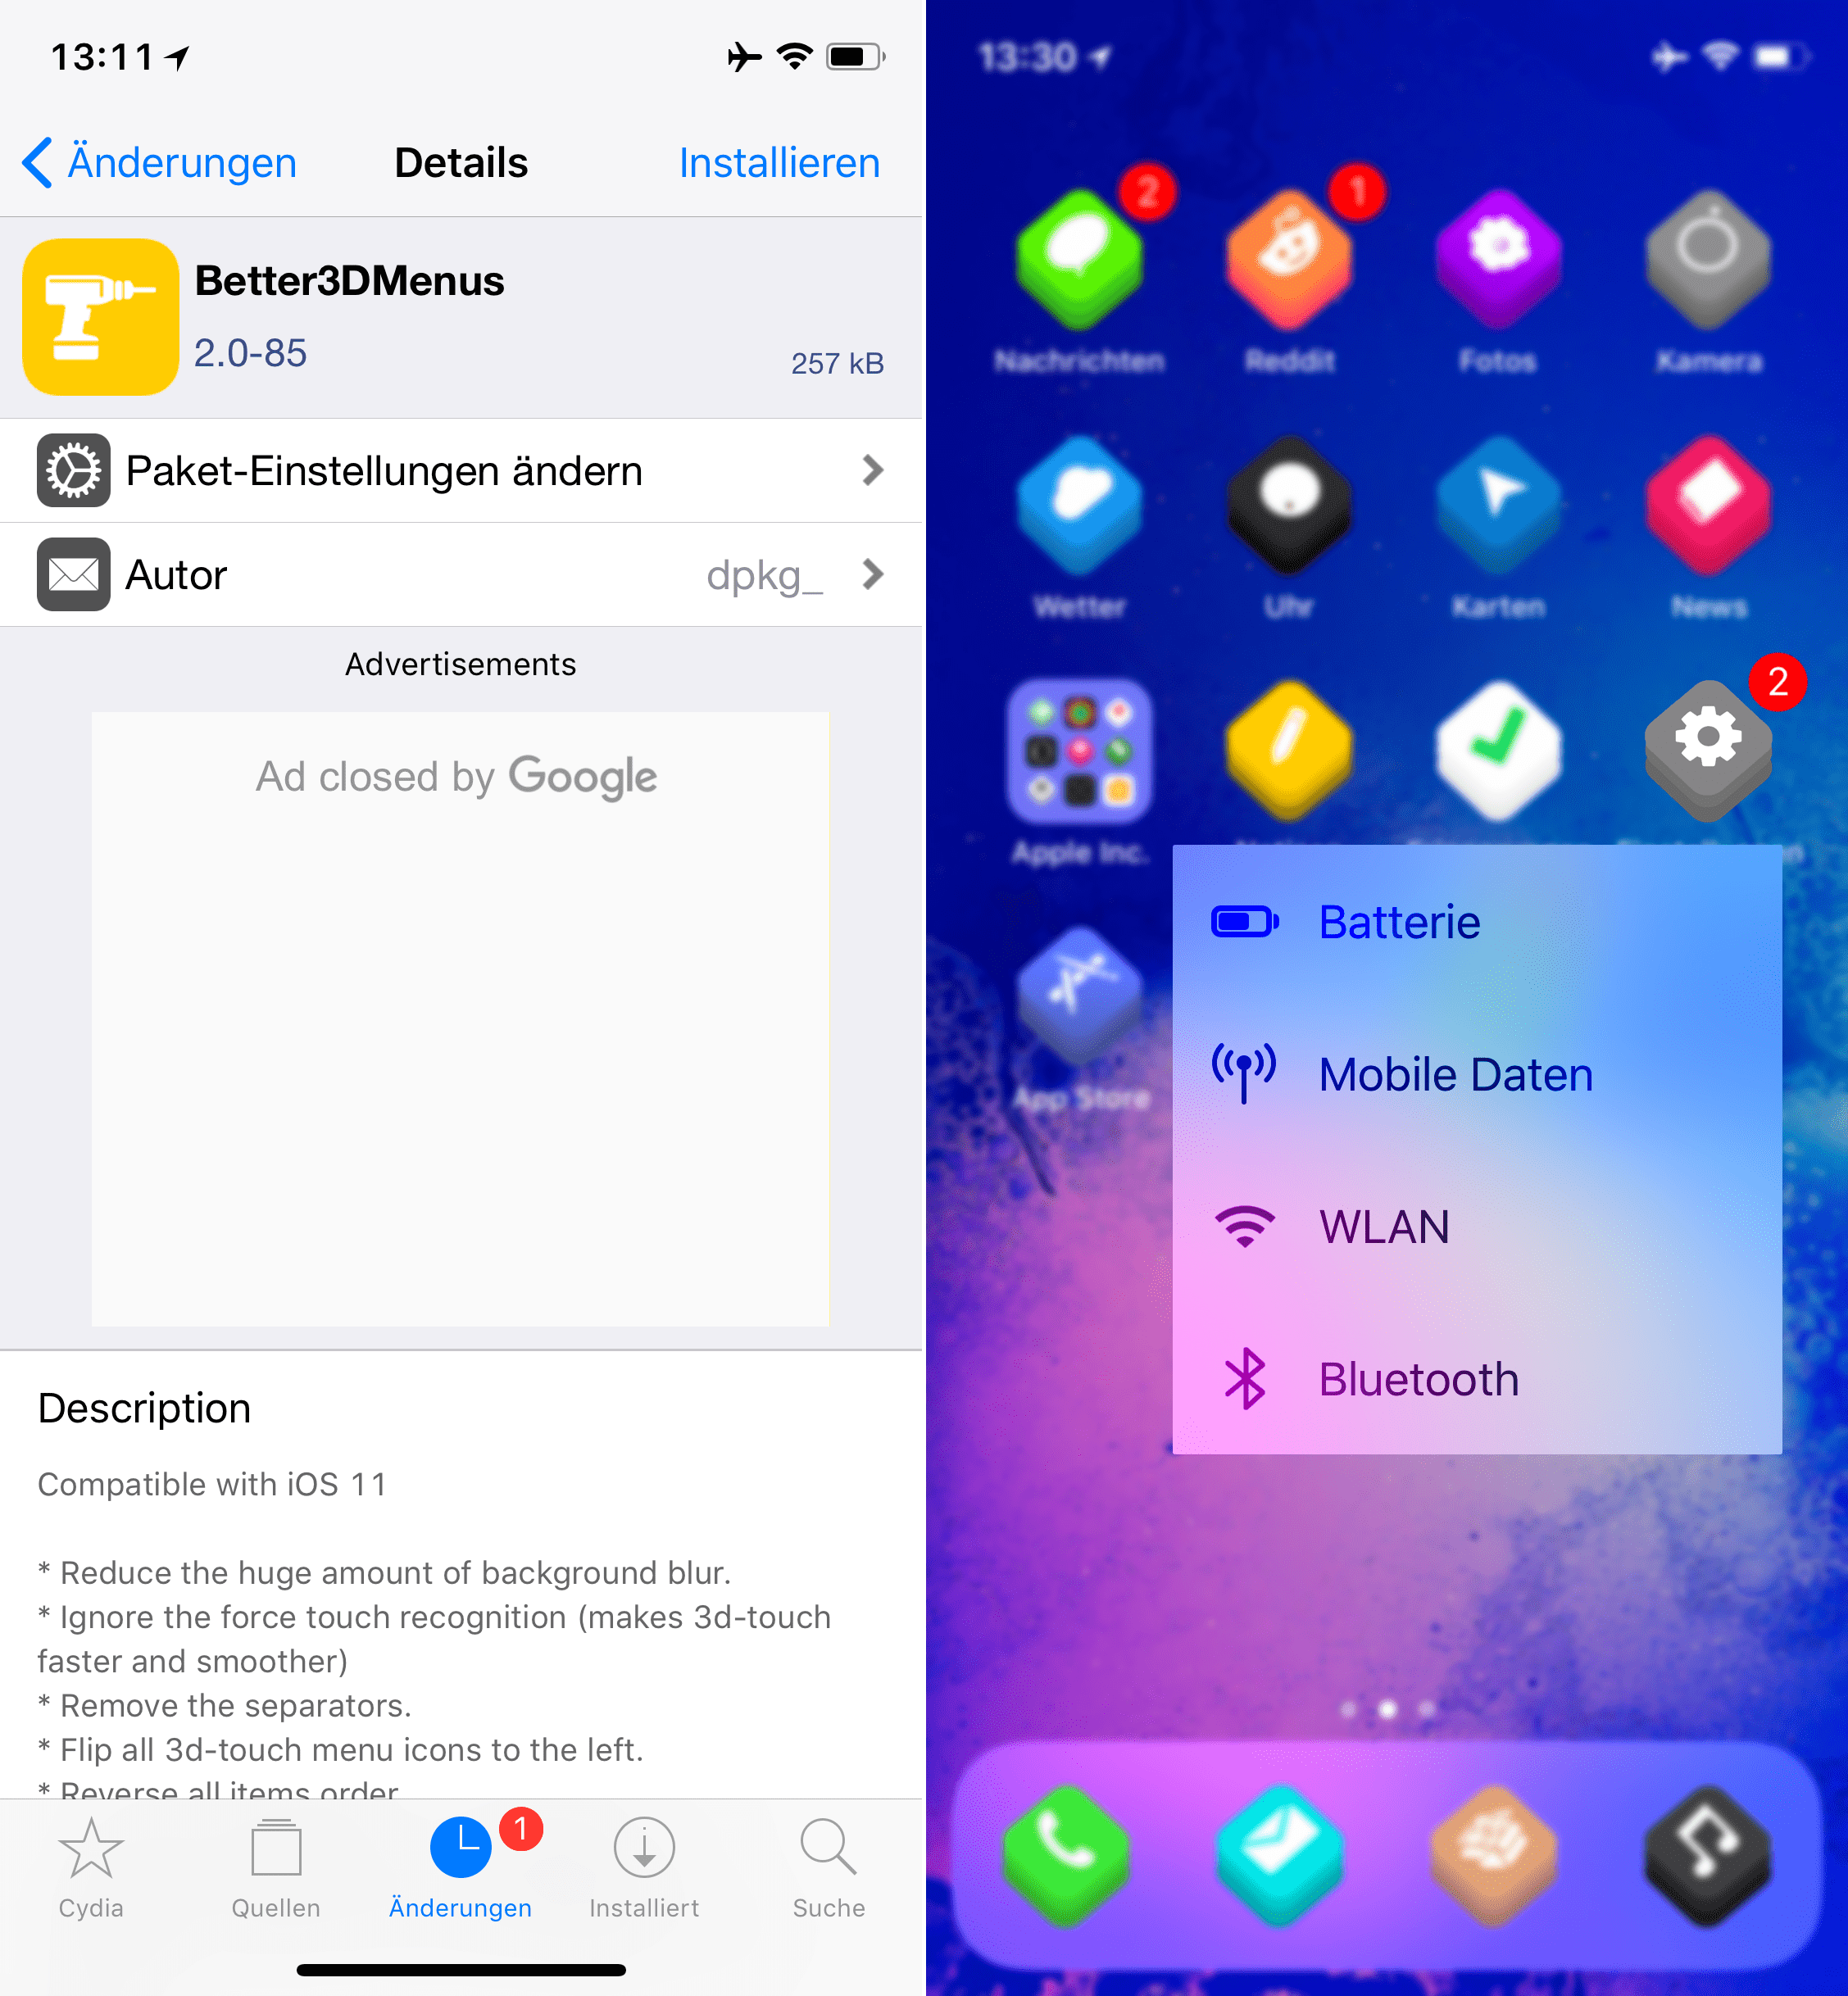 3DTouch Menüs verbessern, Better3DMenus, top, Cydia, Tweak, Sileo, Download, .deb, Hack4Life, Fabian Geissler